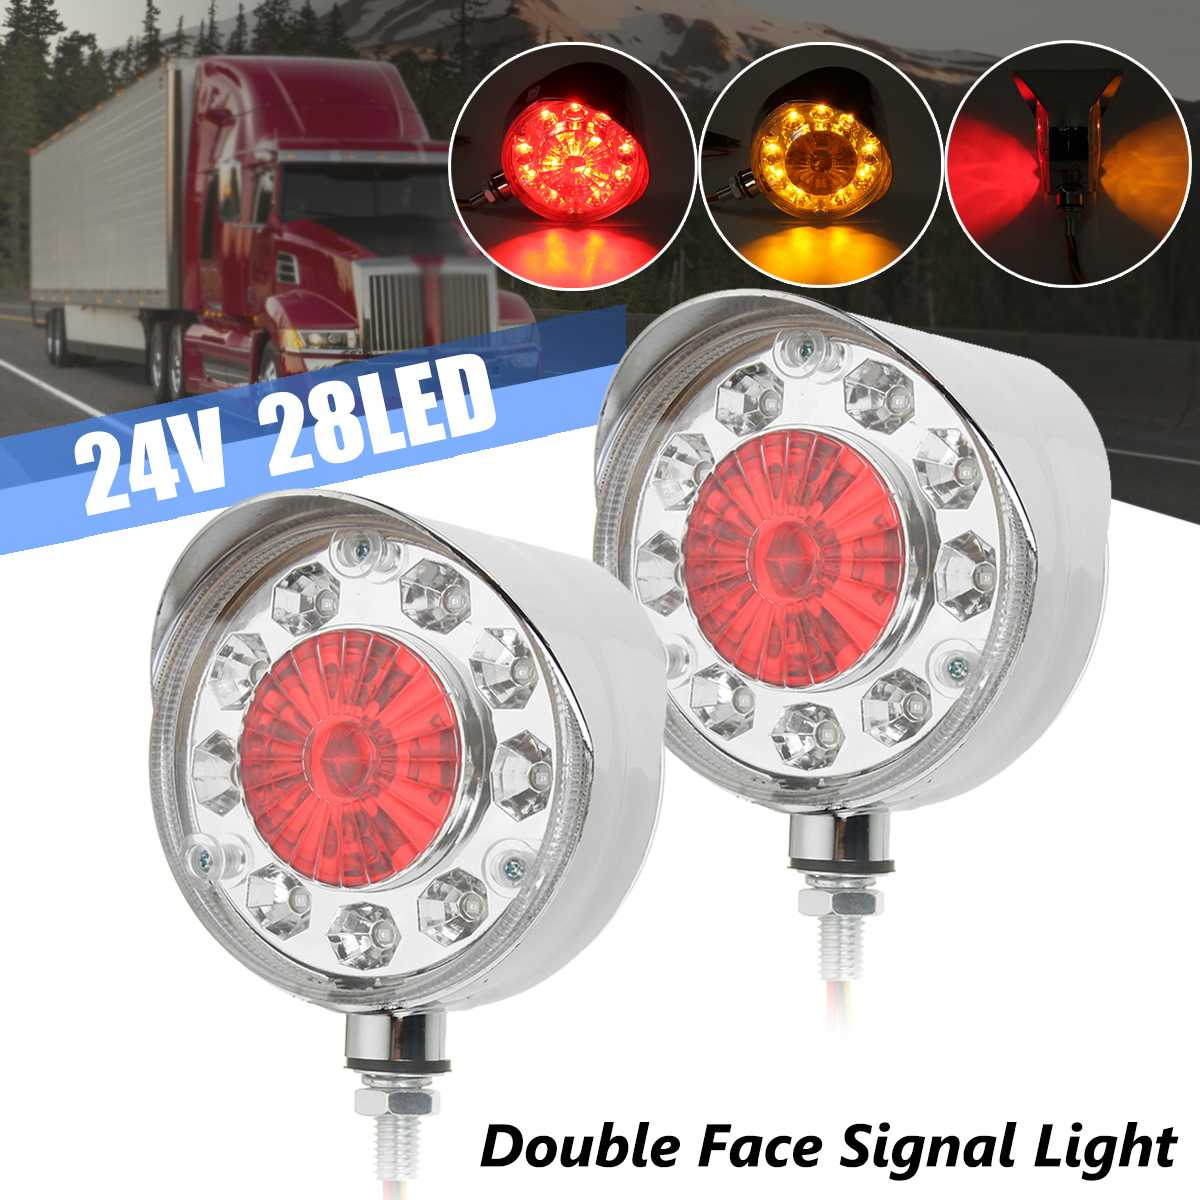 2pcs 24V Double Face Red Yellow Stop Turn Signal Tail Light Lamp Side Marker Lights For Trucks Cars Trailers Tractors Buses Boat